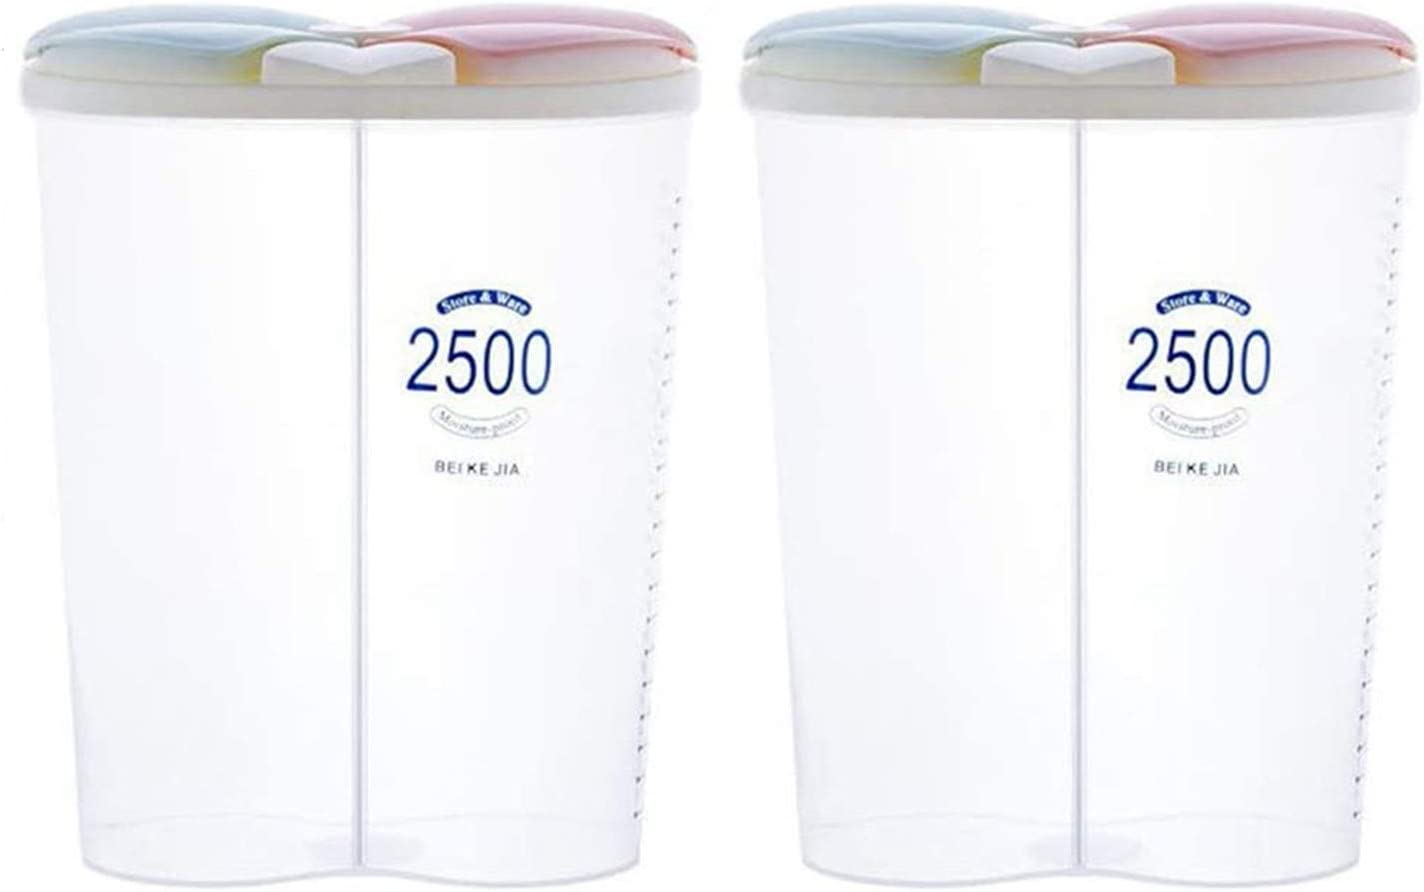 YFGHFHG Plastic Max 52% OFF Cereal Dispenser Cereals Container Sep Storage Max 43% OFF